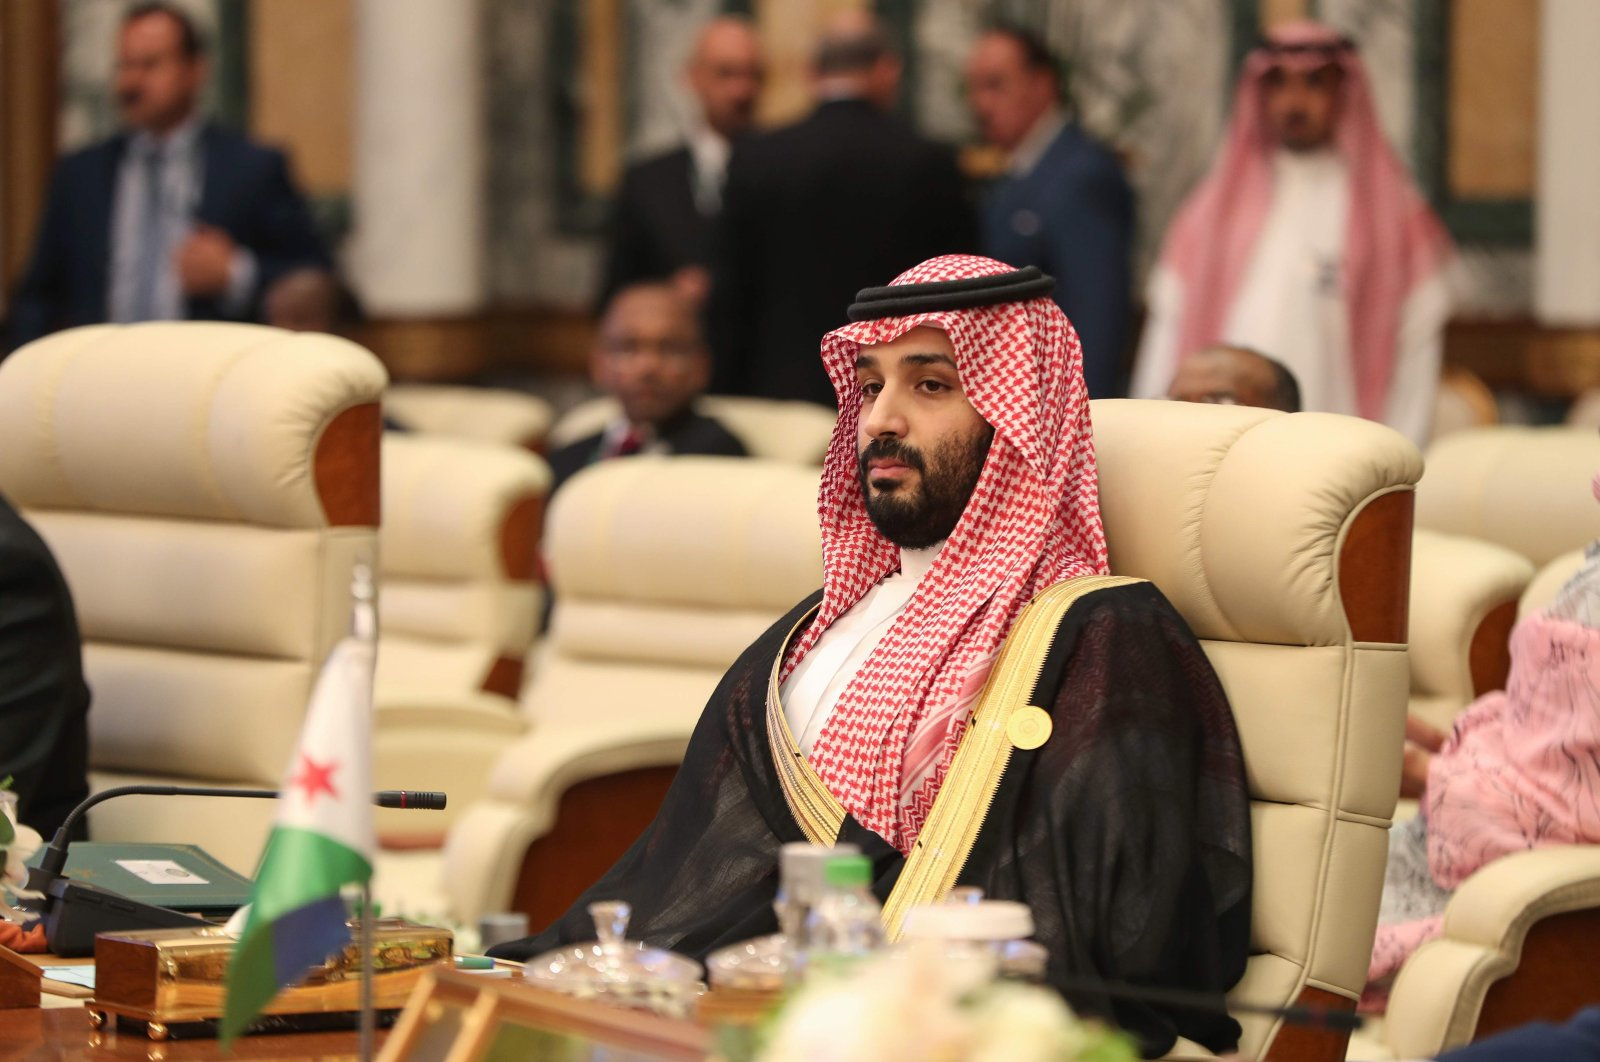 Saudi Crown Prince Mohammed bin Salman attends the extraordinary Arab summit held at al-Safa Royal Palace in Mecca, May 31, 2019. (AFP Photo)